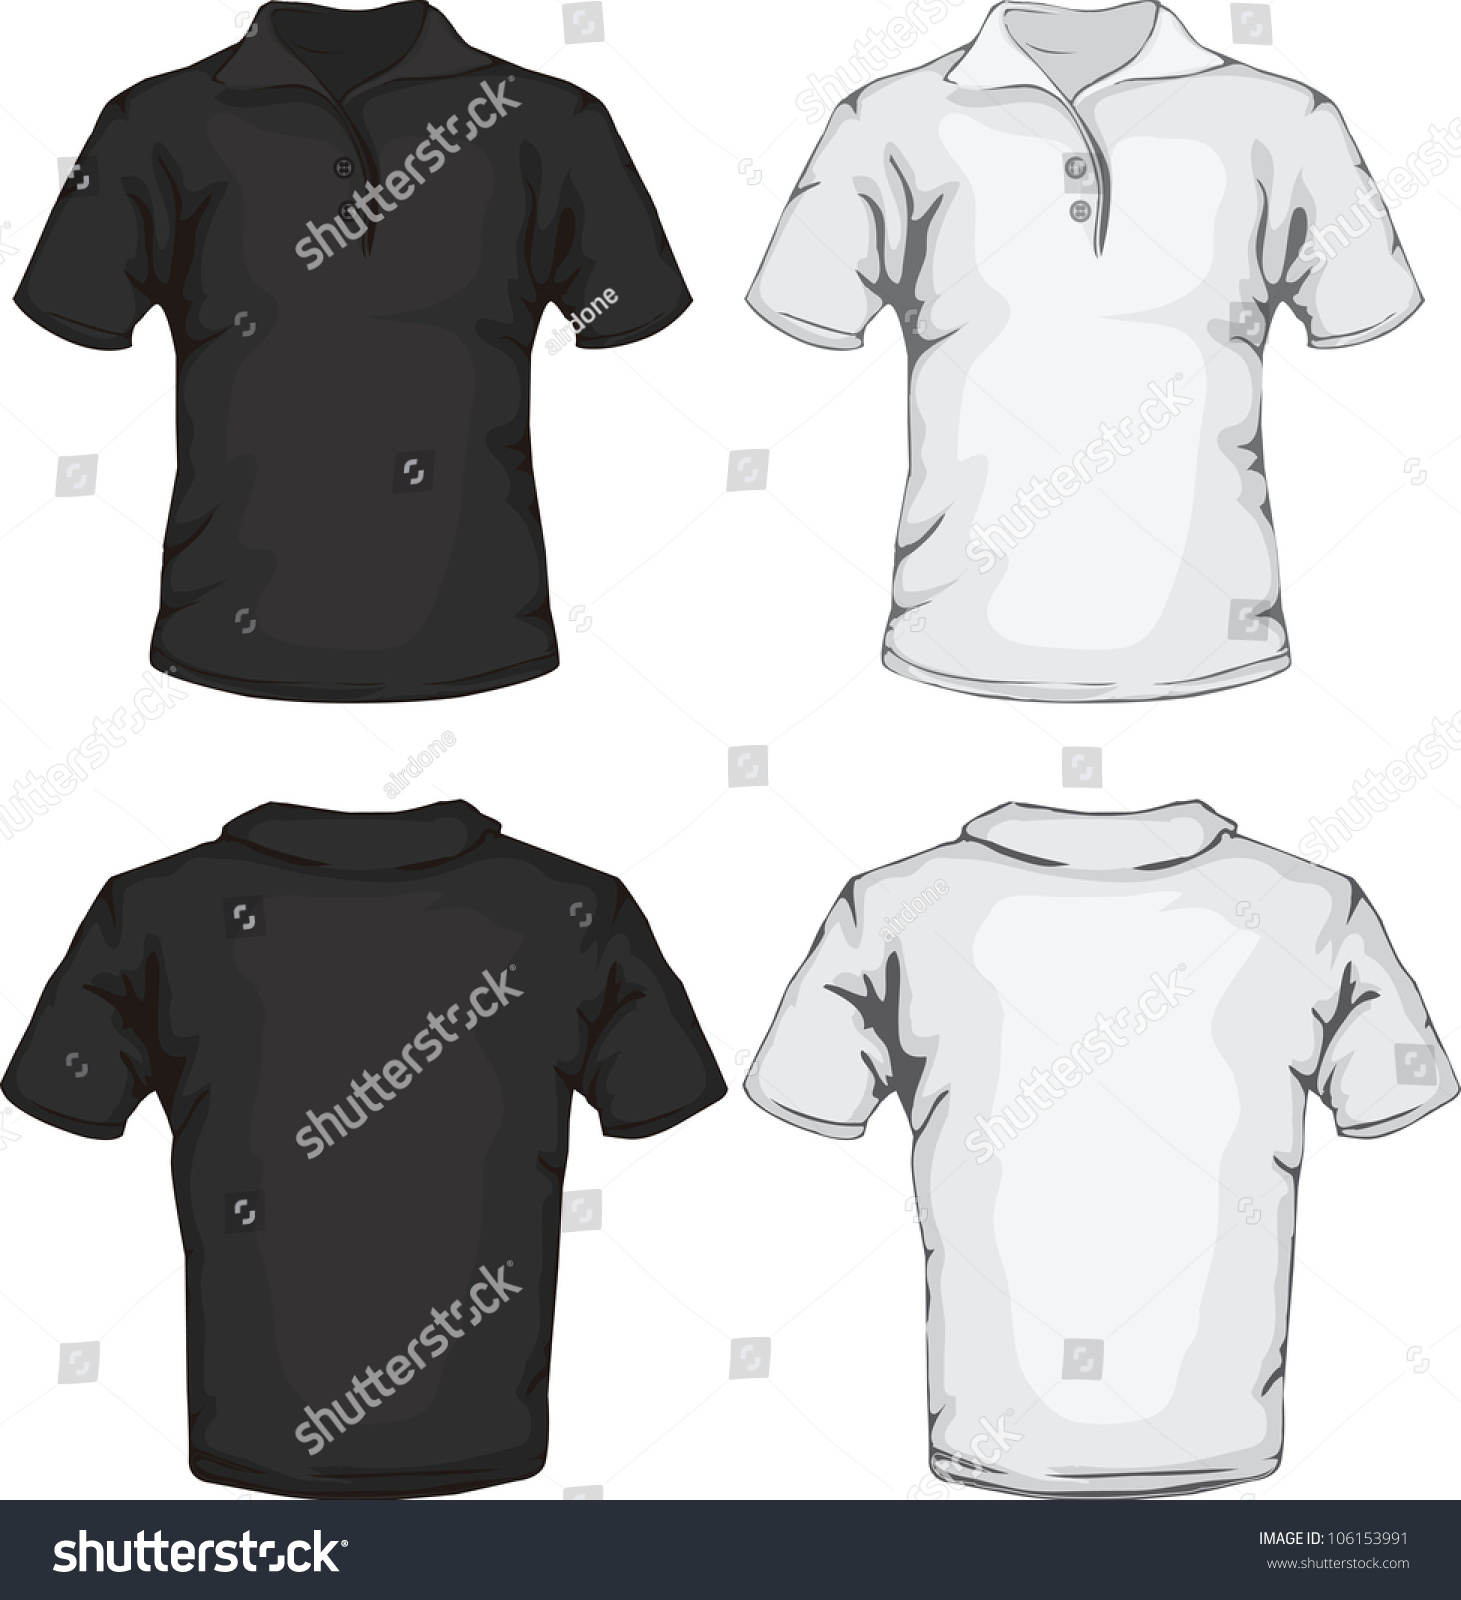 Shirt design illustrator template - Vector Illustration Of Men S Polo Shirt Template In Black And White Front And Back Design